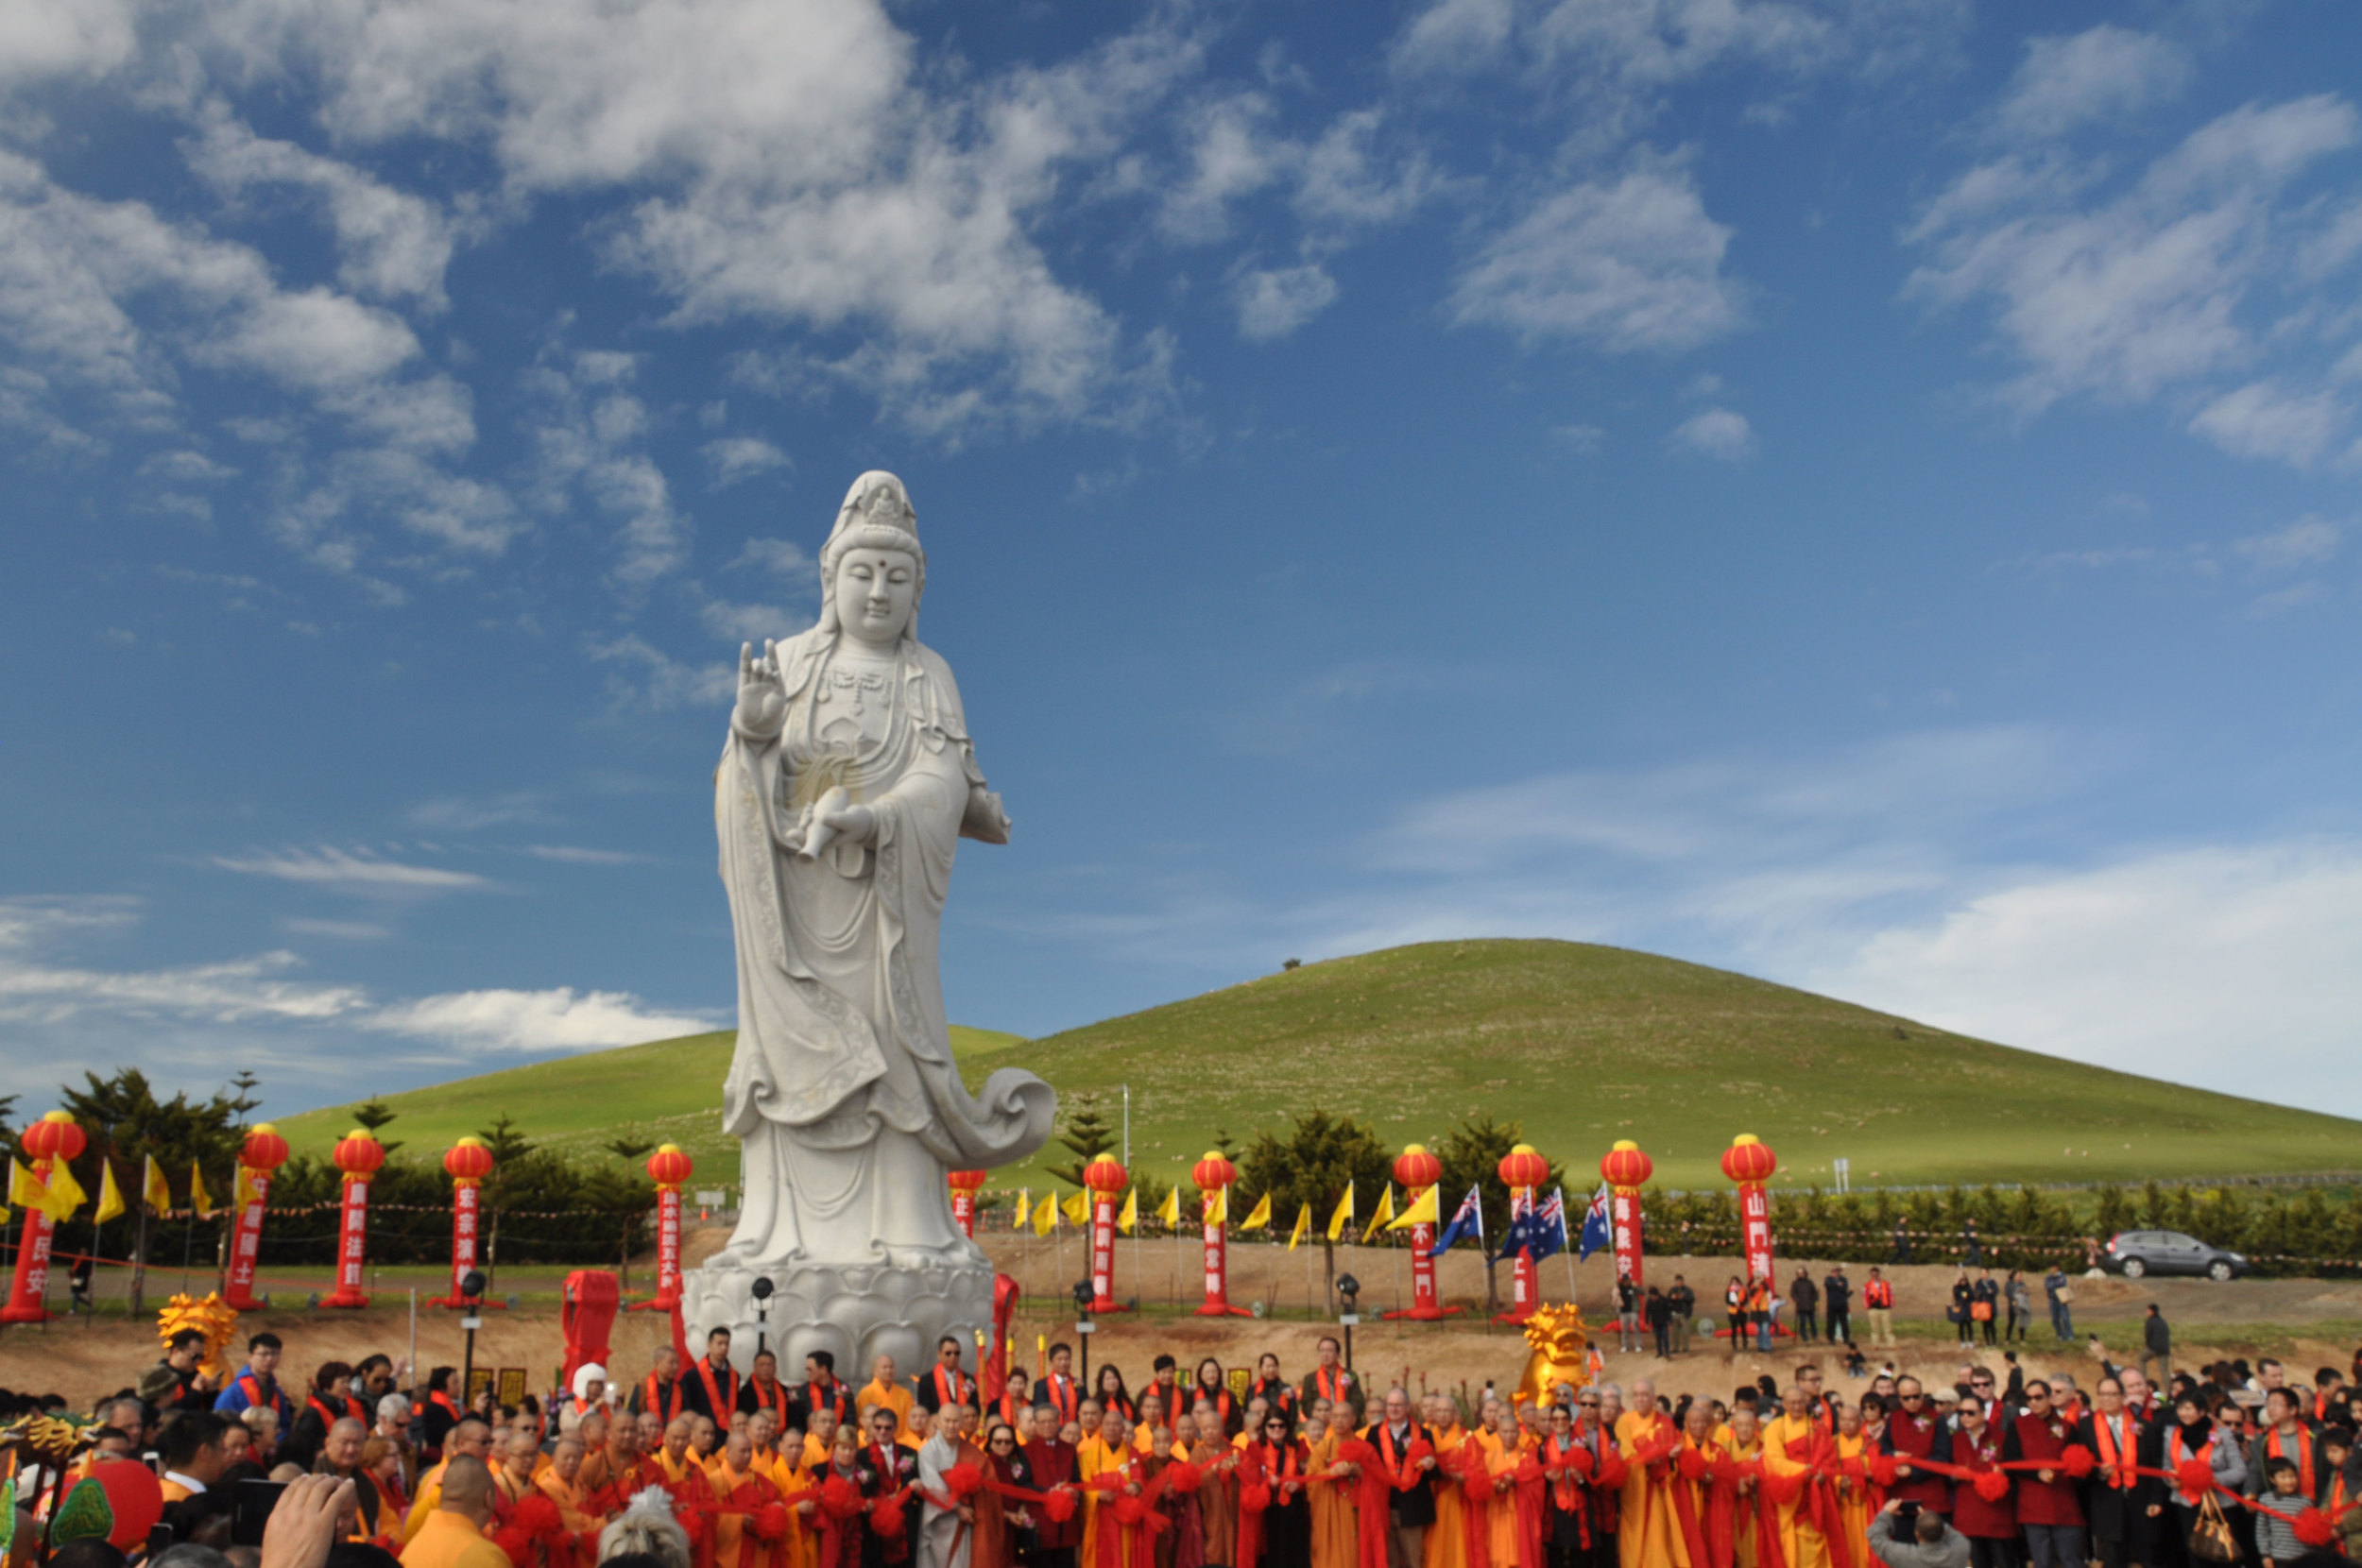 Pictures from the officiation and blessing of the Kuanyin statue at the Nan Hai Pu Tuo Buddhist Temple and Retreat